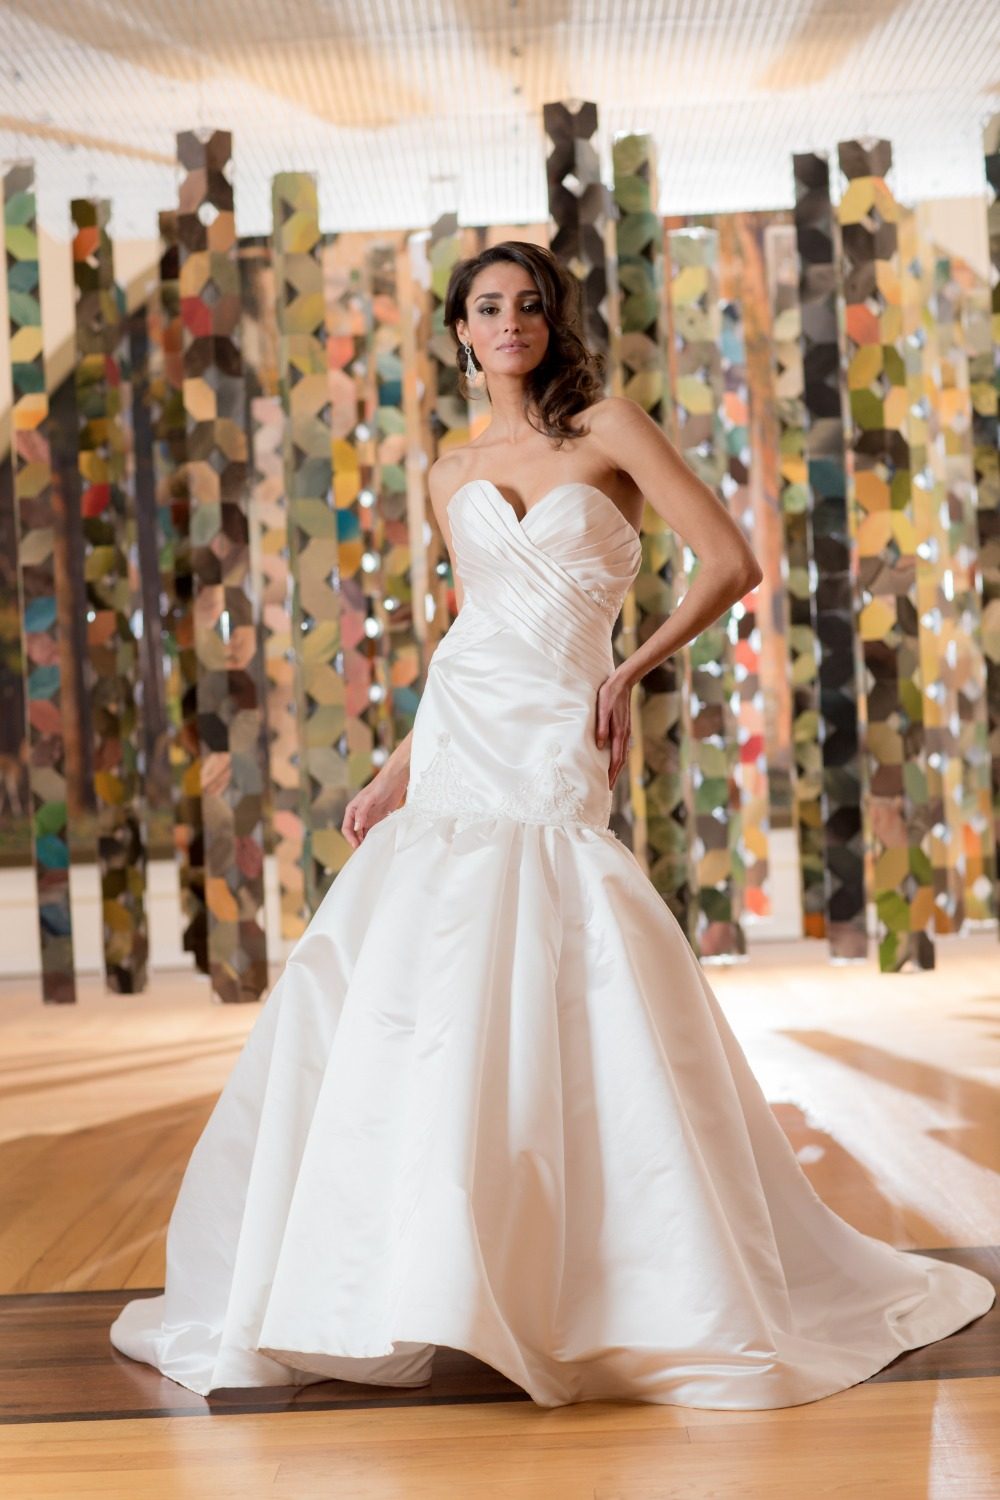 Satin wedding gown with sweetheart neckline